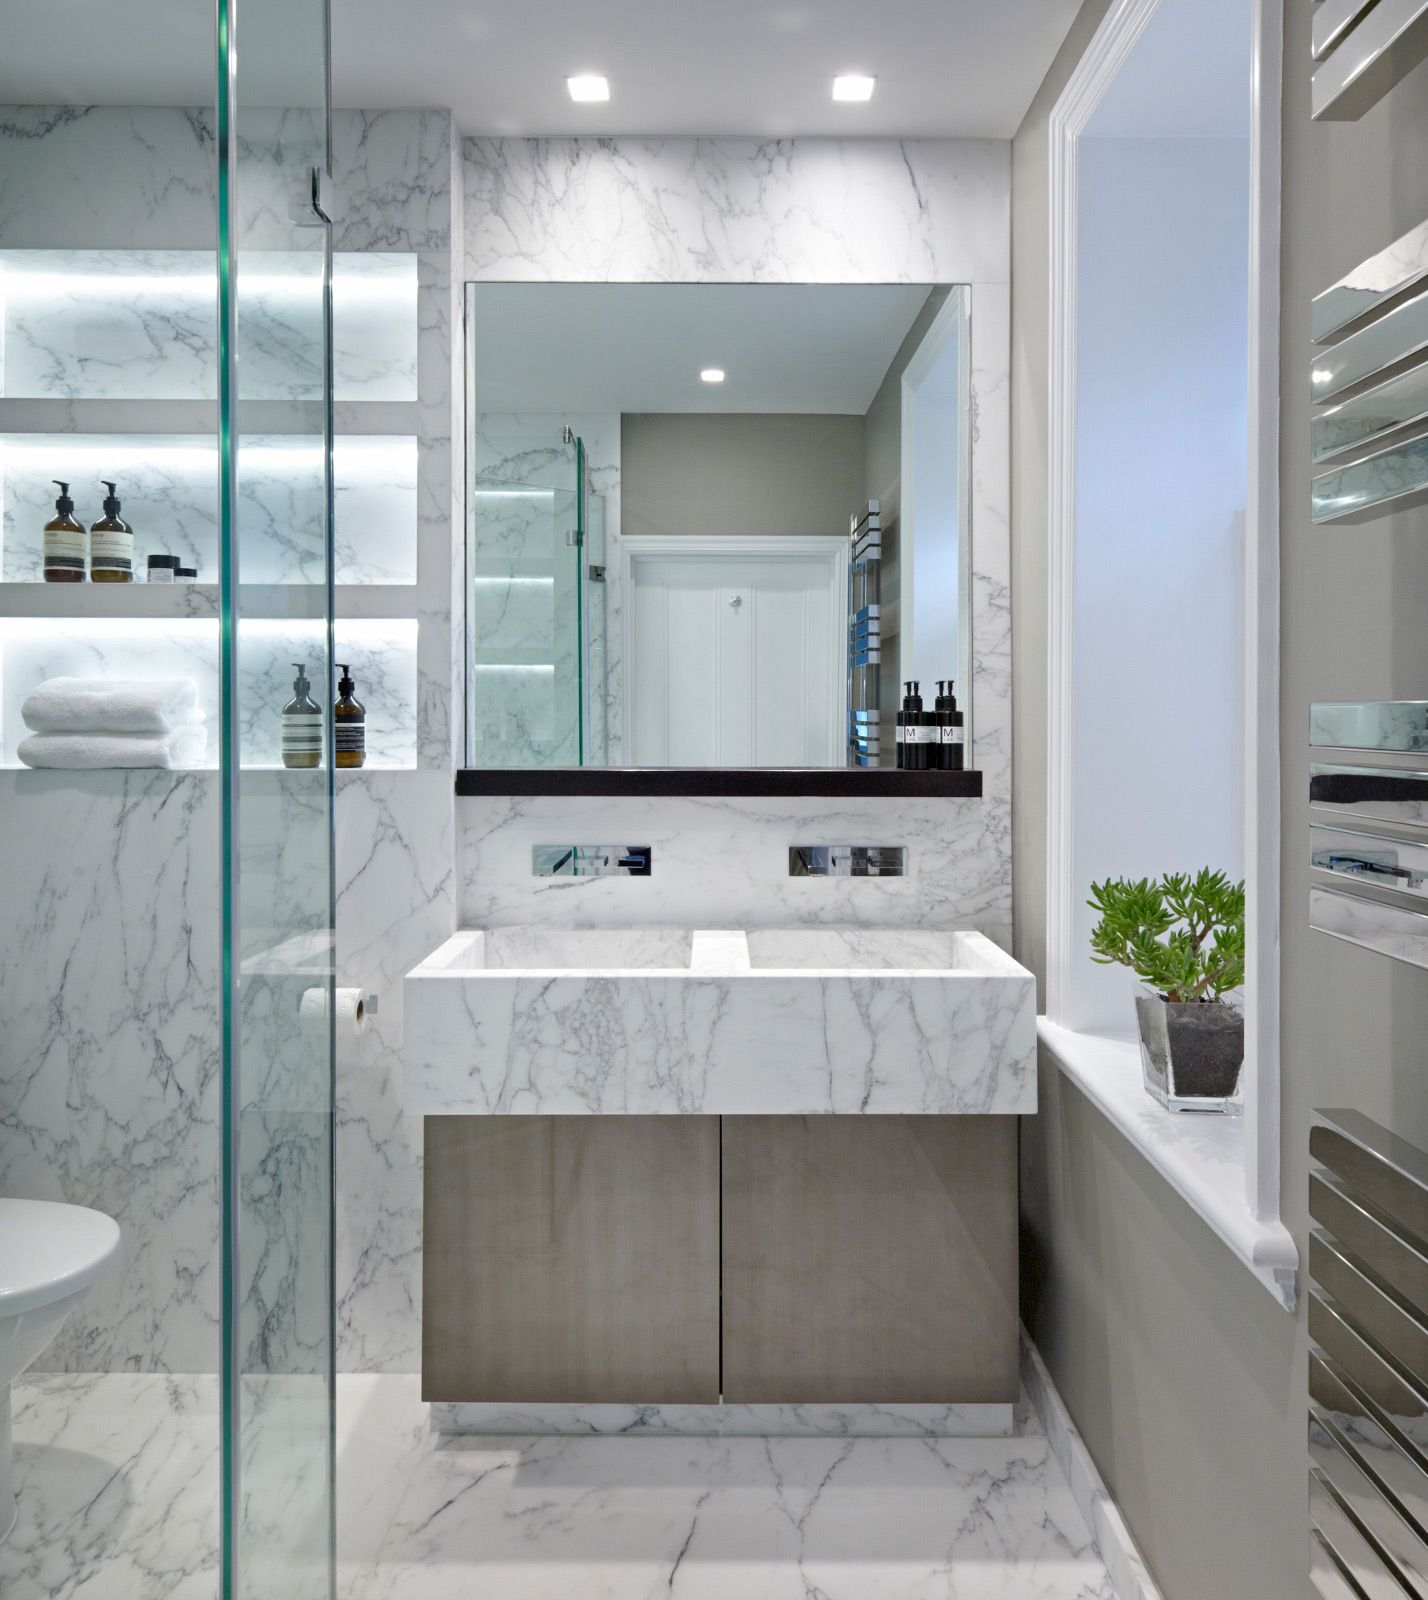 White Marble Bathroom In A Home Yorkshire UK Designed By Fiona Barratt